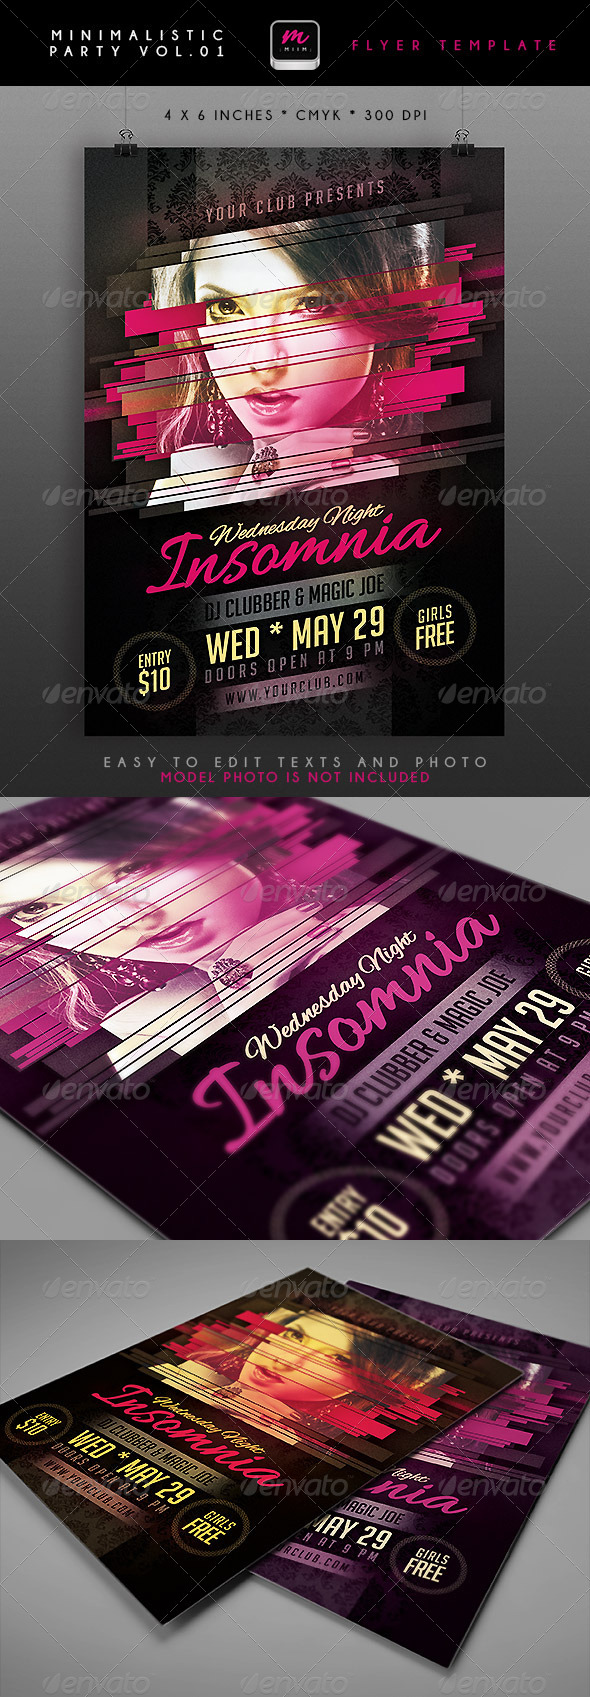 Minimalistic Party Flyer 1 - Clubs & Parties Events